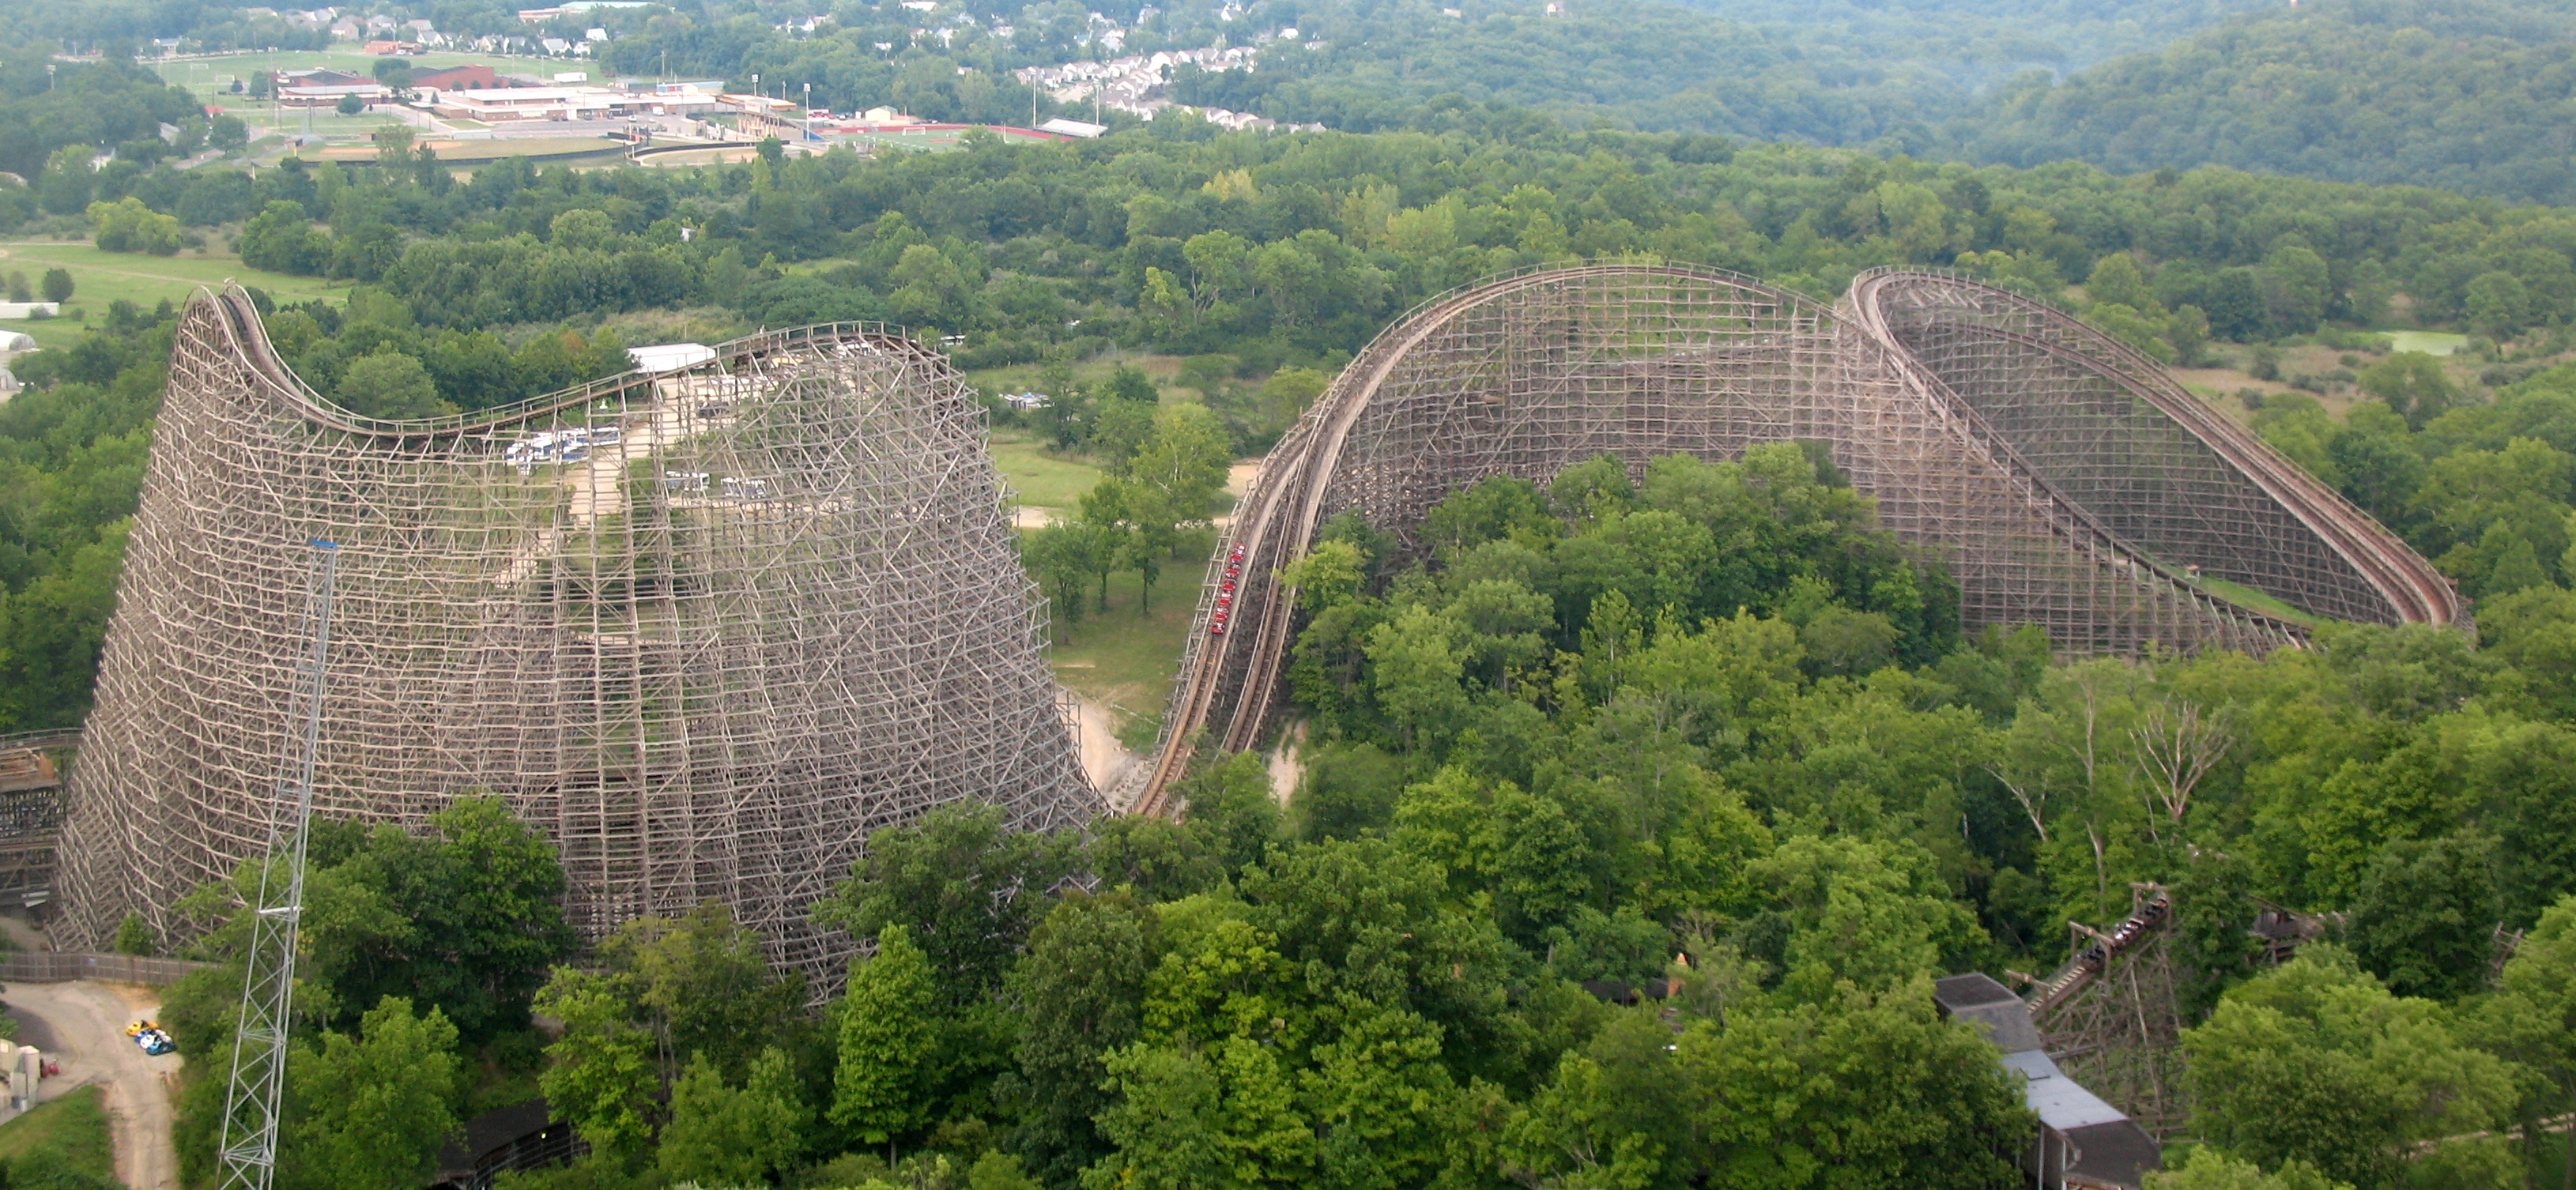 So The Worlds Tallest And Fastest Wooden Roller Coaster Got